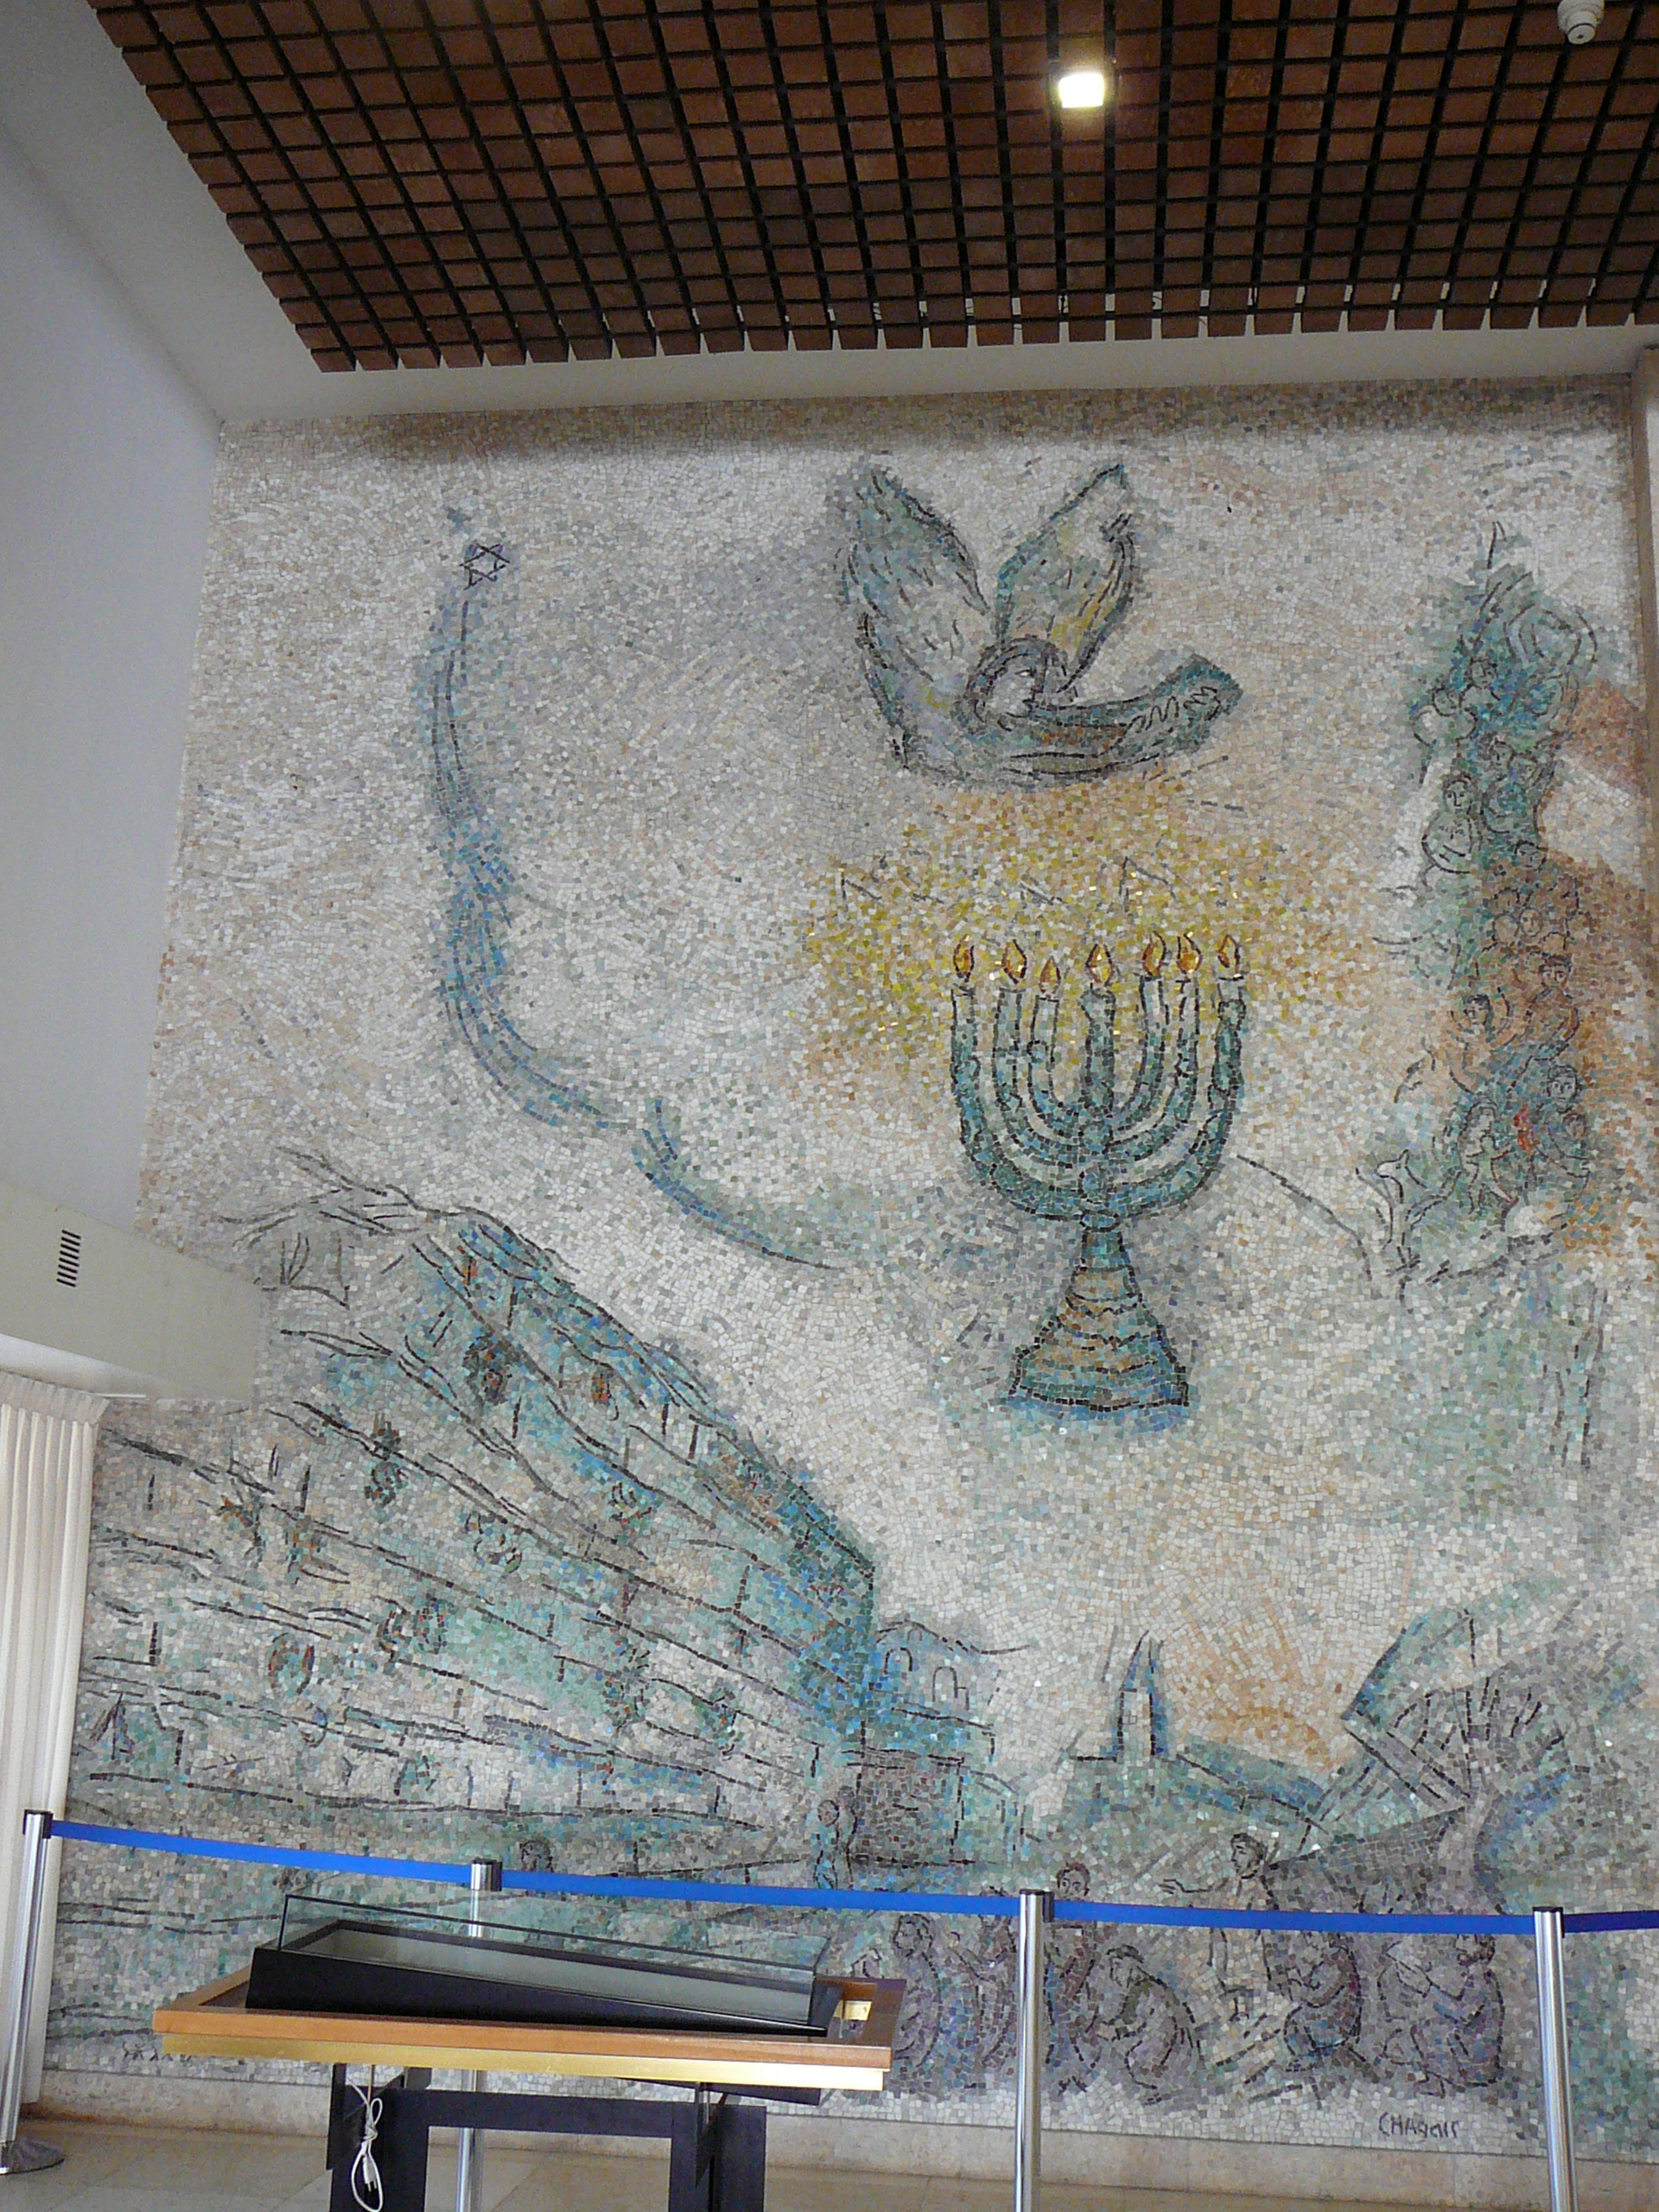 Chagall's interpretation of the Wailing Wall as a great mosaic performed by Italian artists. In the middle appears the angel of salvation, which calls the Jewish people home from the diaspora